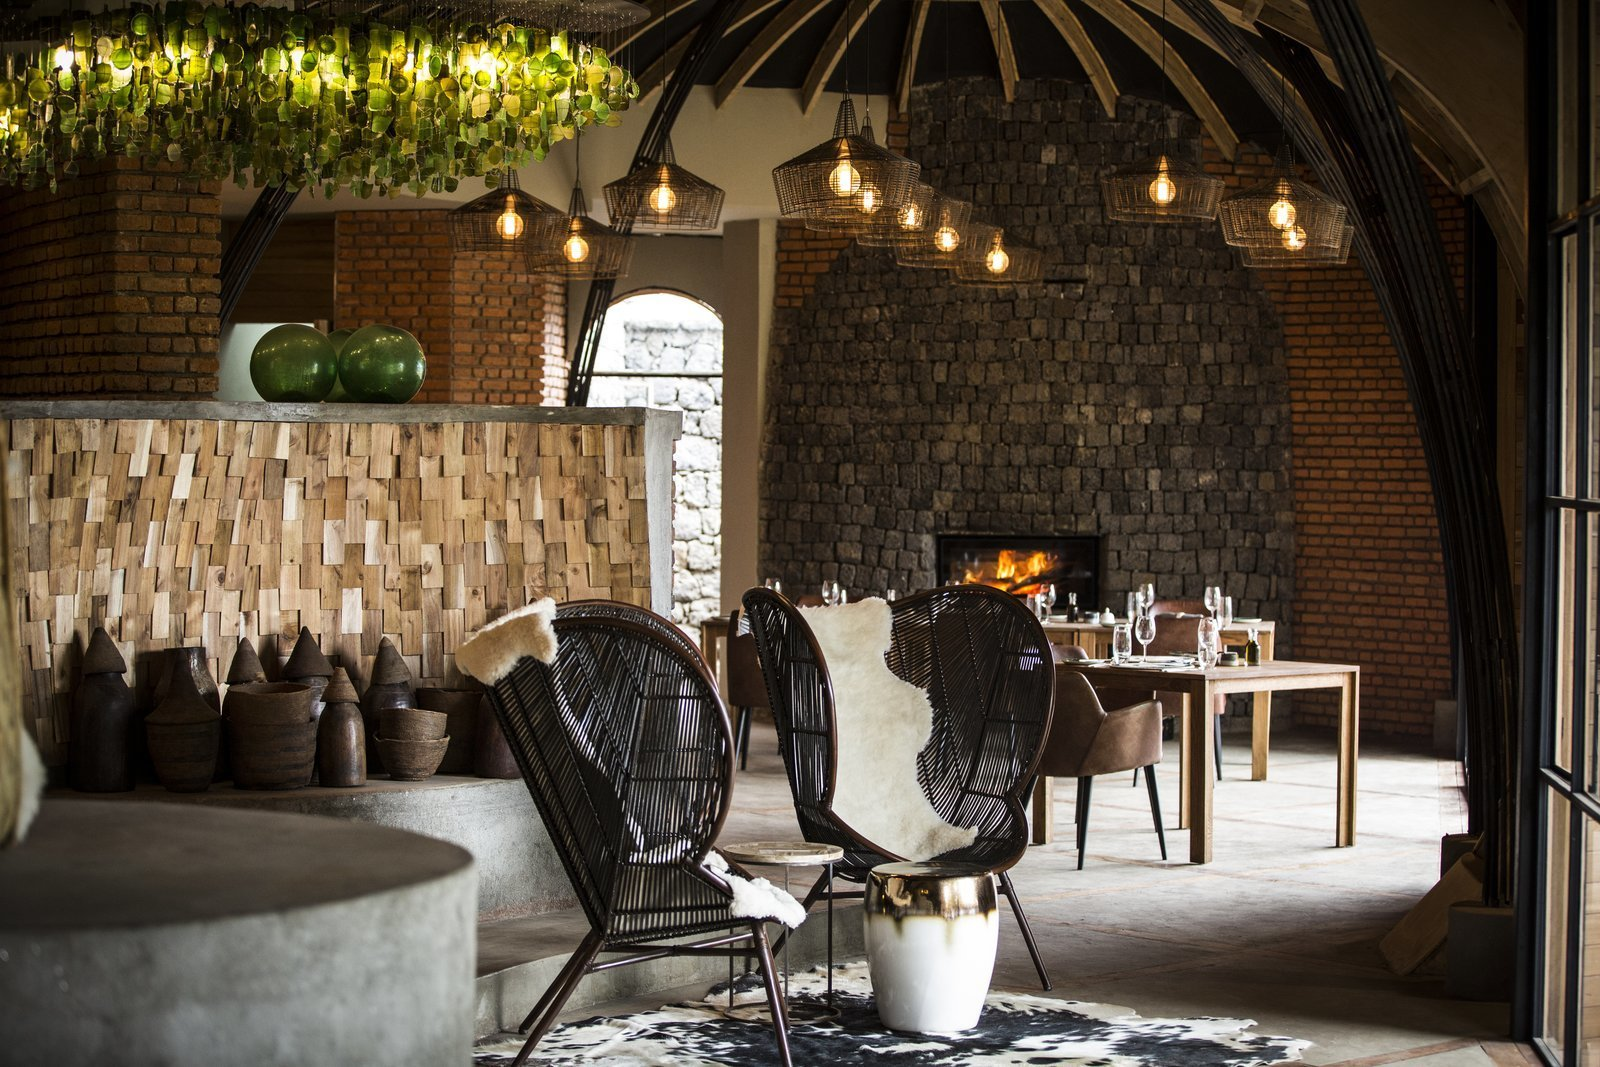 Recycled glass was used for chandeliers and black and white cow hides were used to reflect the rural way of life in the villages.  Photo 7 of 11 in Take an Eco-Escape to a Spherical Forest Villa in an Eroded Volcanic Cone in Rwanda